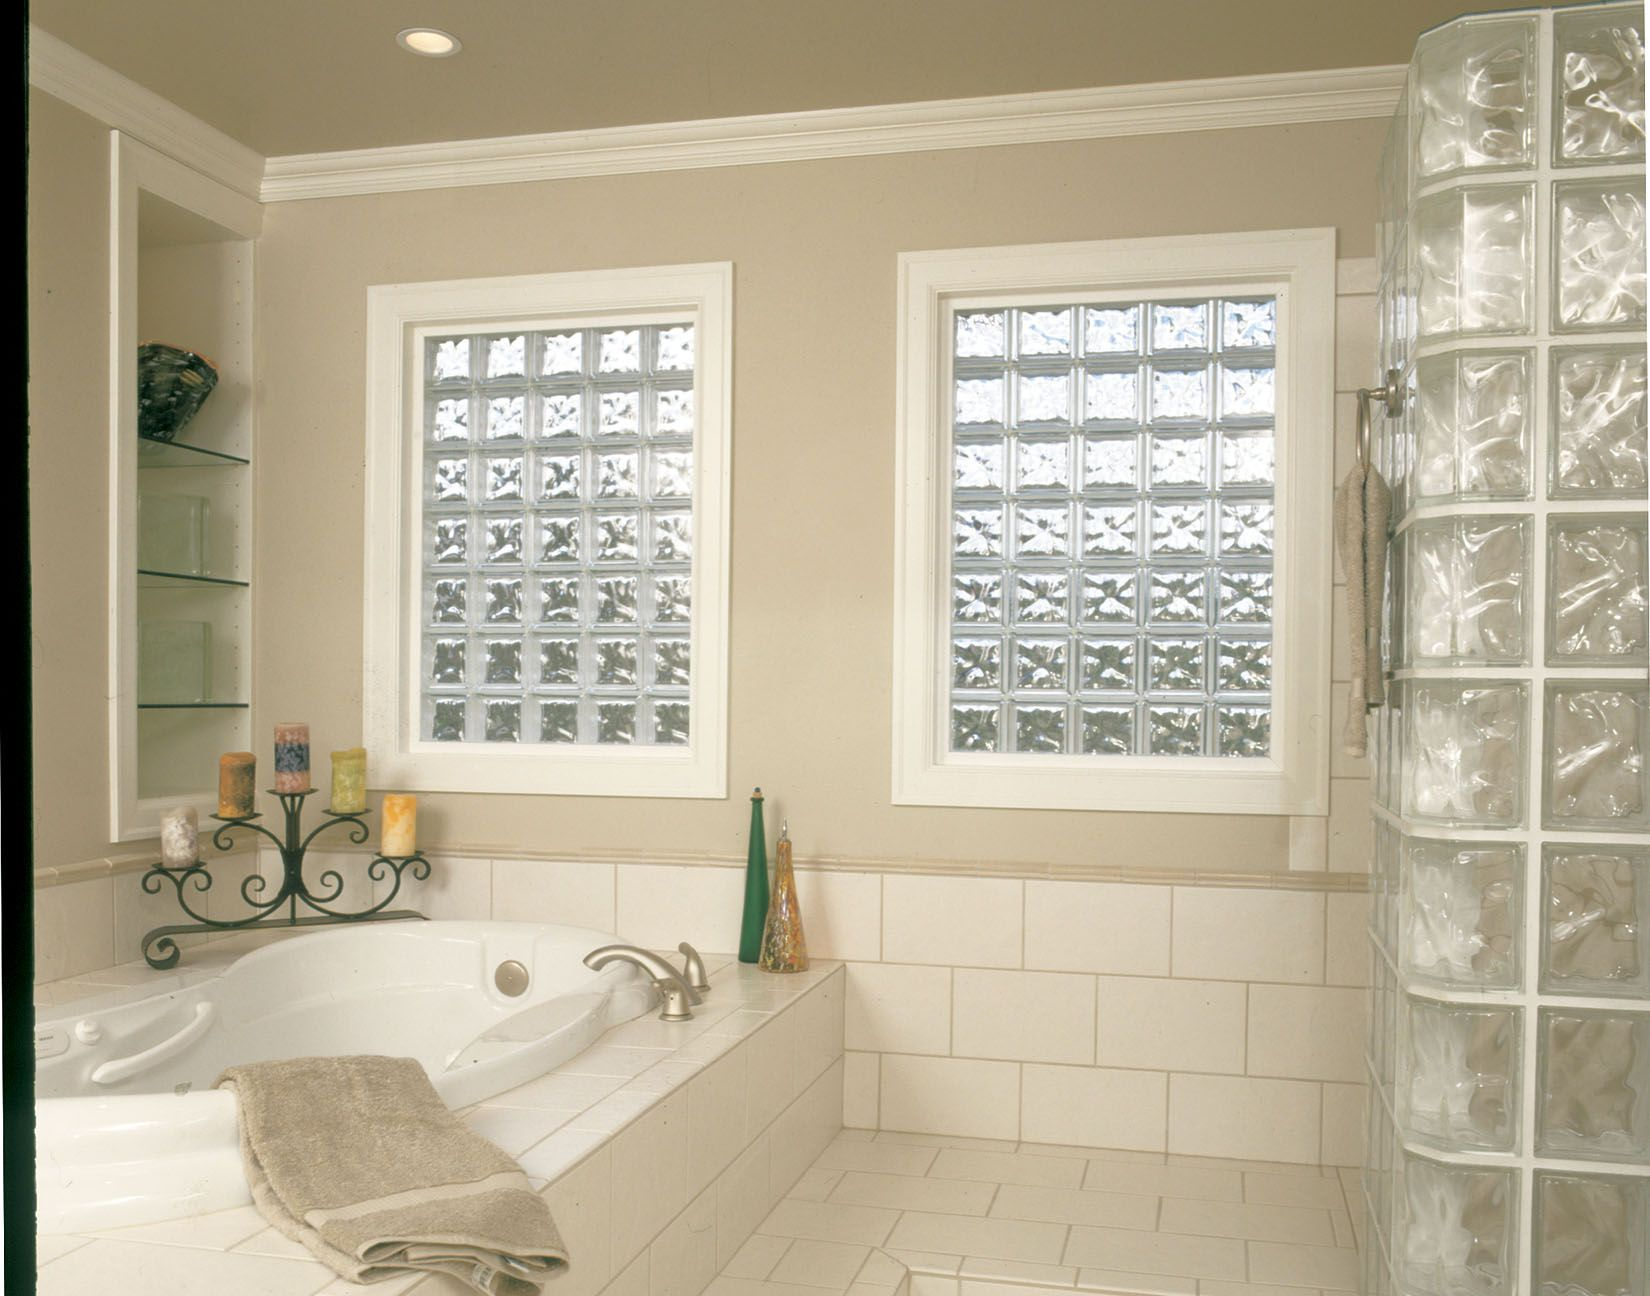 glass block bathroom windows. Bring Light To Your Bathroom Walls With Glass Block From Pittsburgh Corning. Product: Windows